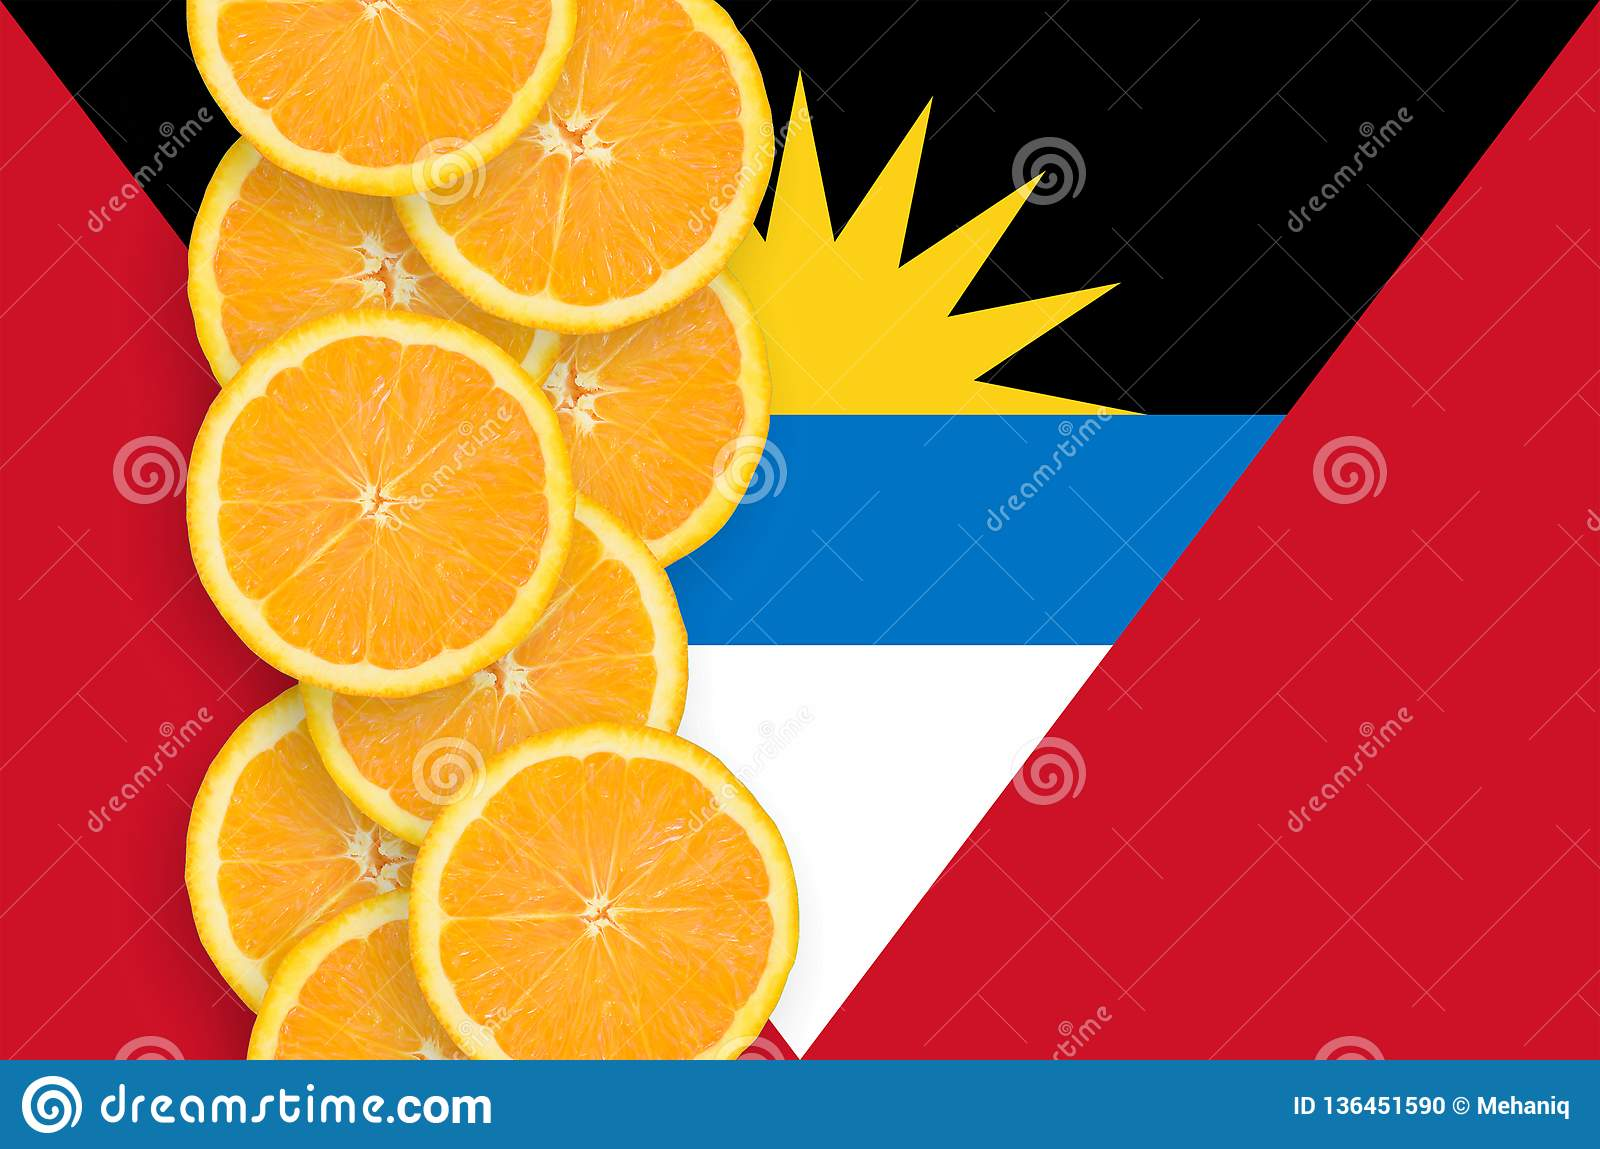 Antigua and Barbuda flag and citrus fruit slices vertical row